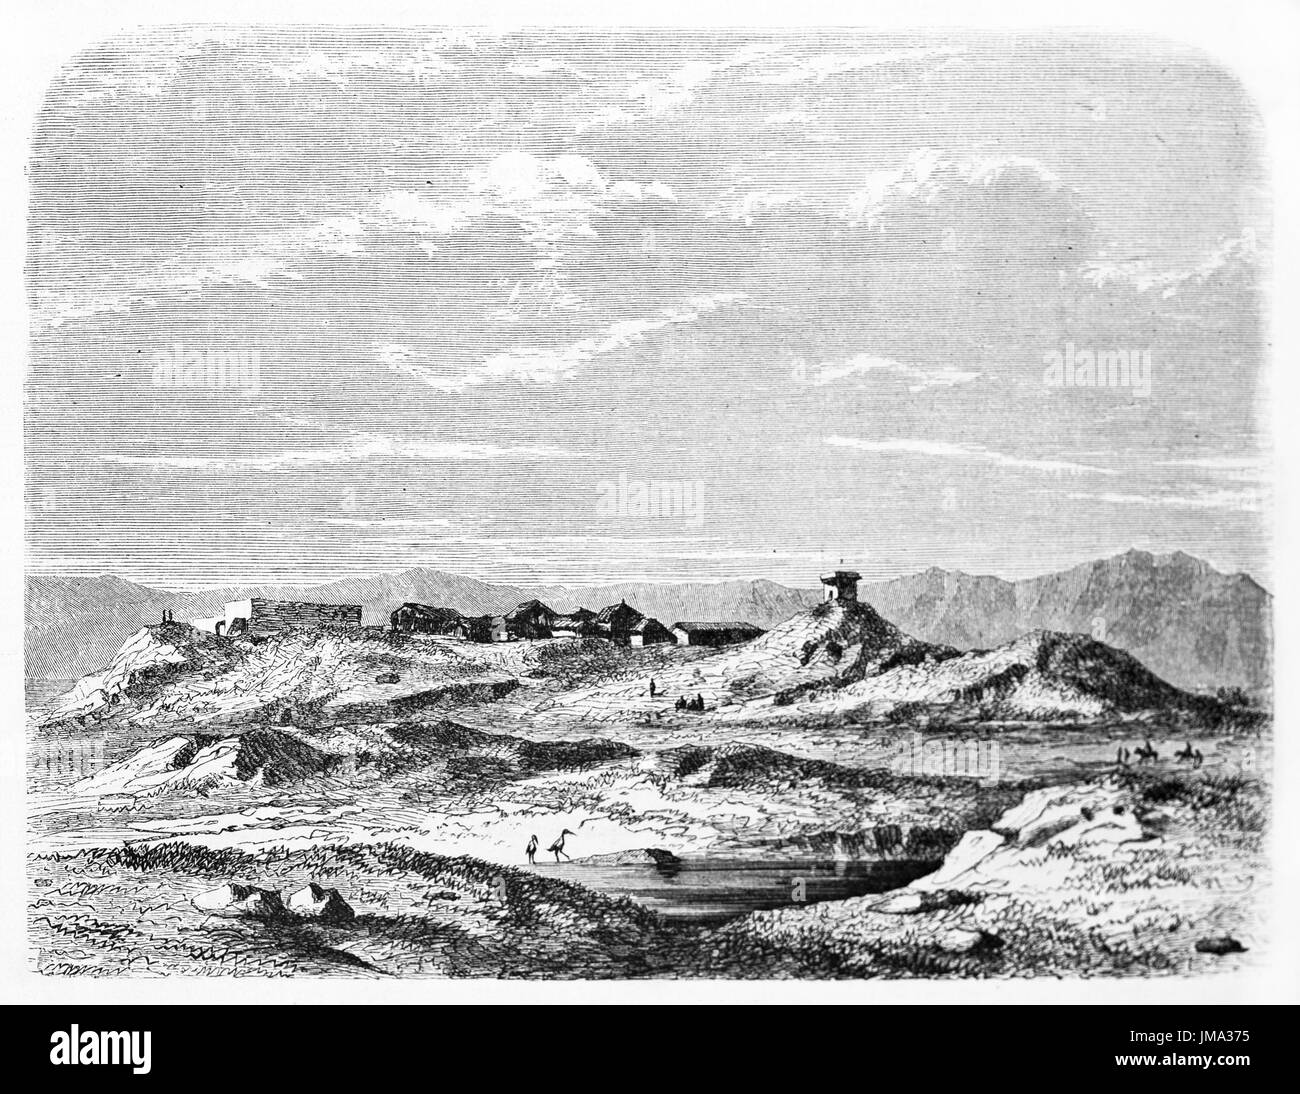 Old view of Khorsabad (formerly Dur-Sharrukin: Fortess of Sargon), Antique Assyrian capital, North Iraq. Created by Flandin, published on Le Tour du M - Stock Image